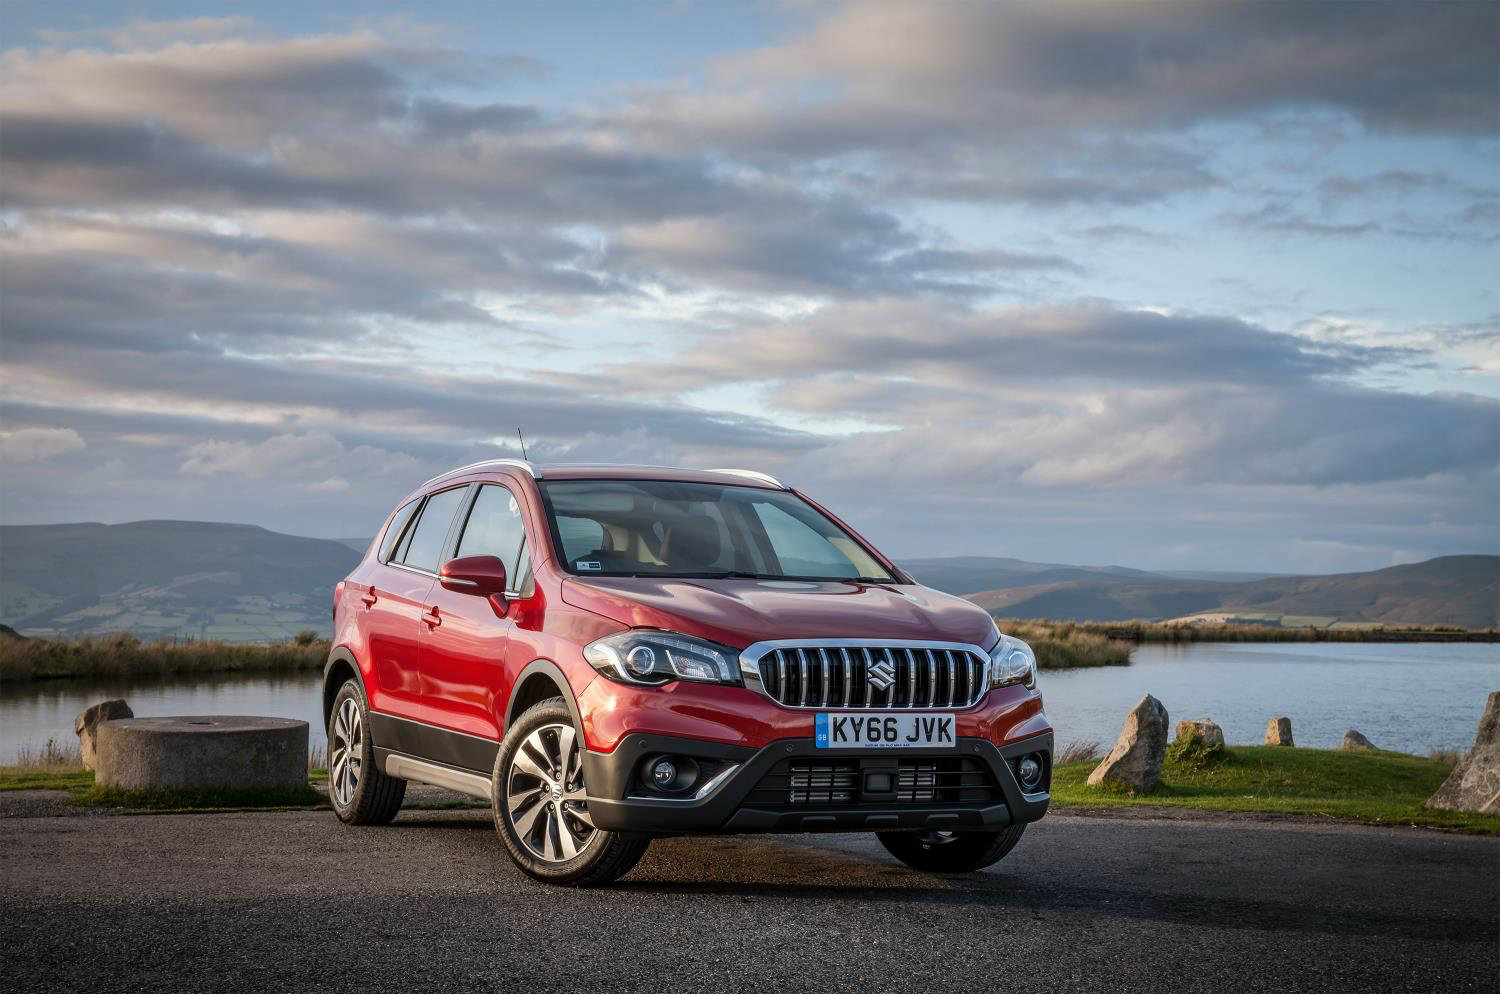 2017 suzuki sx4 s-cross facelift priced from £14,999 in the uk